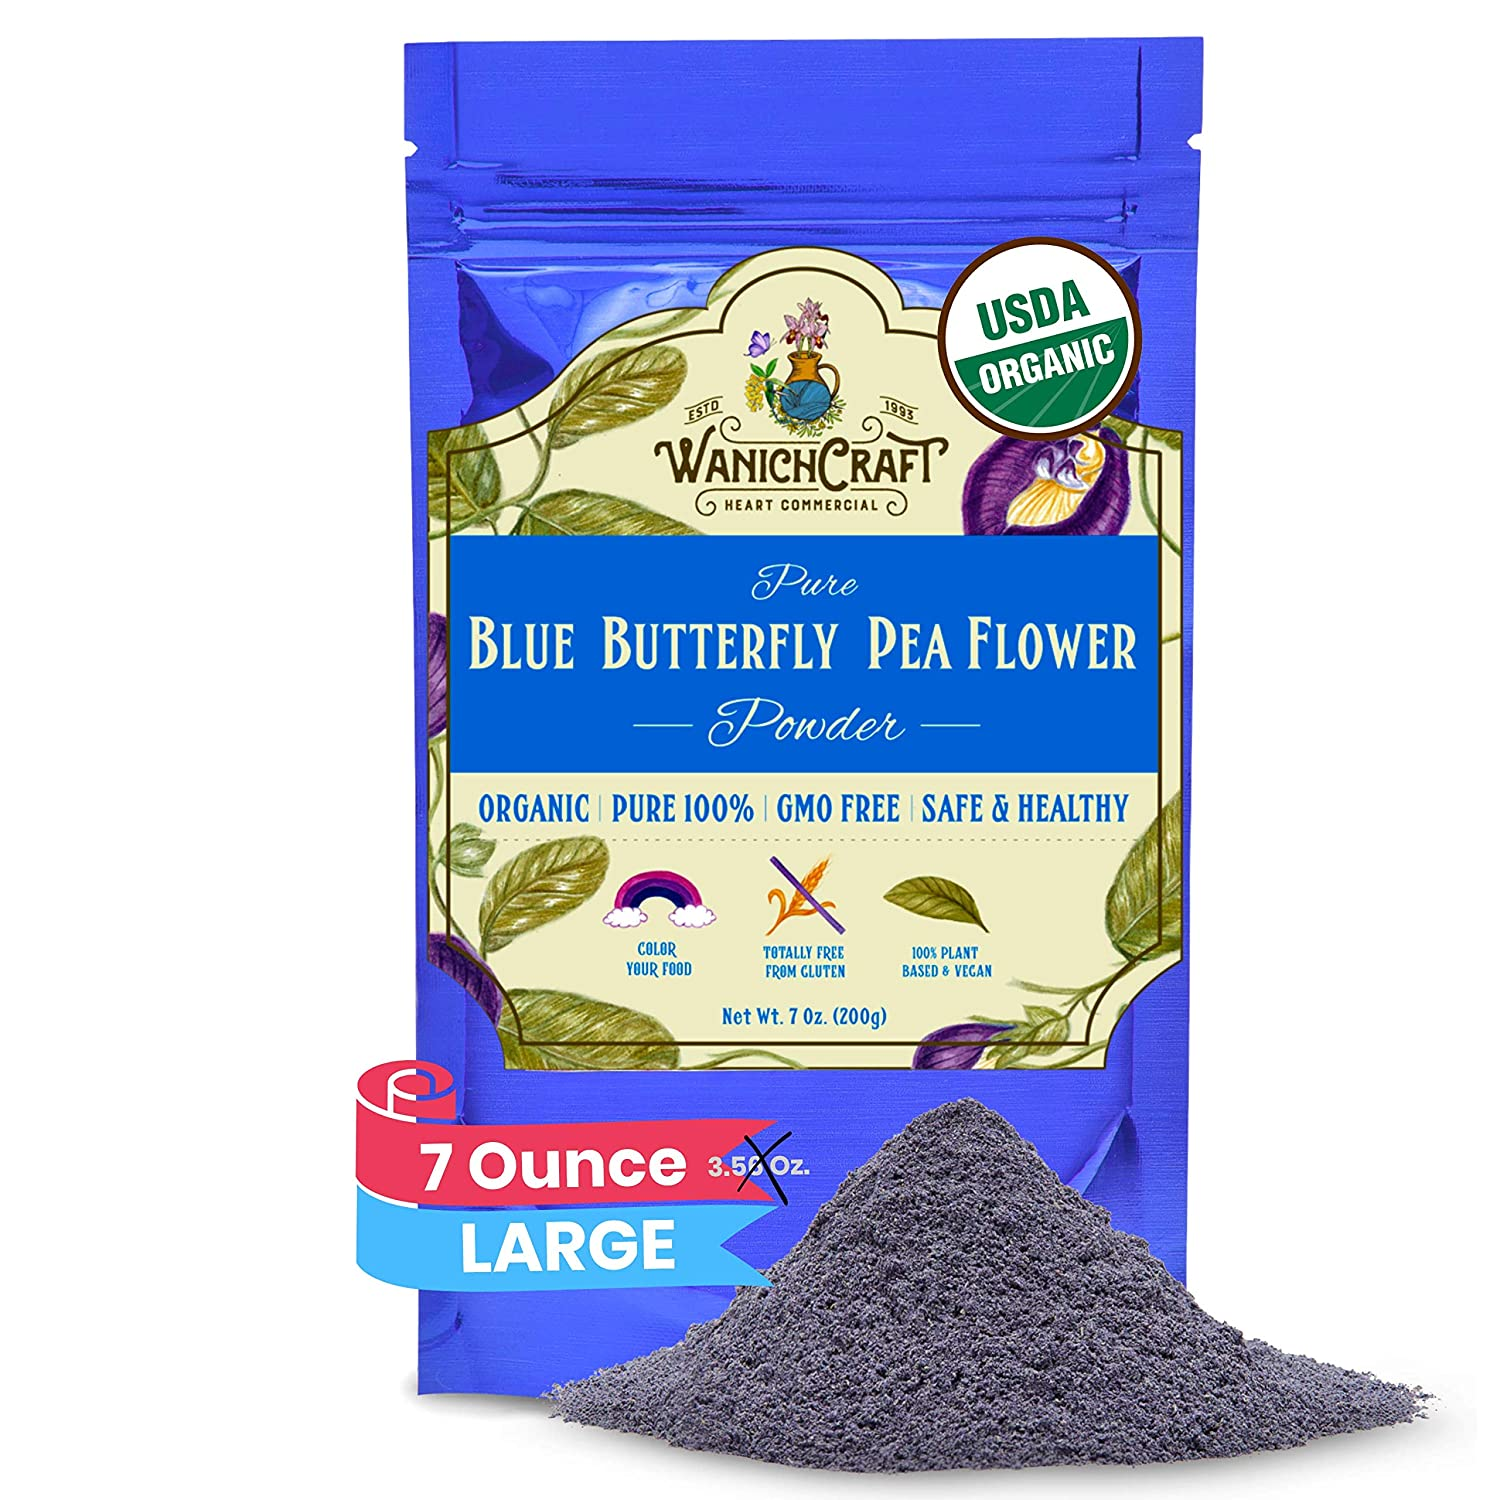 Butterfly Pea Flower Powder Blue Matcha Tea Natural Food Coloring | 100% USDA Organic | GMO Free | Gluten Free | No Artificial Dyes | Plant-Based Colors | 7 Oz. (Powder 200g Bags)